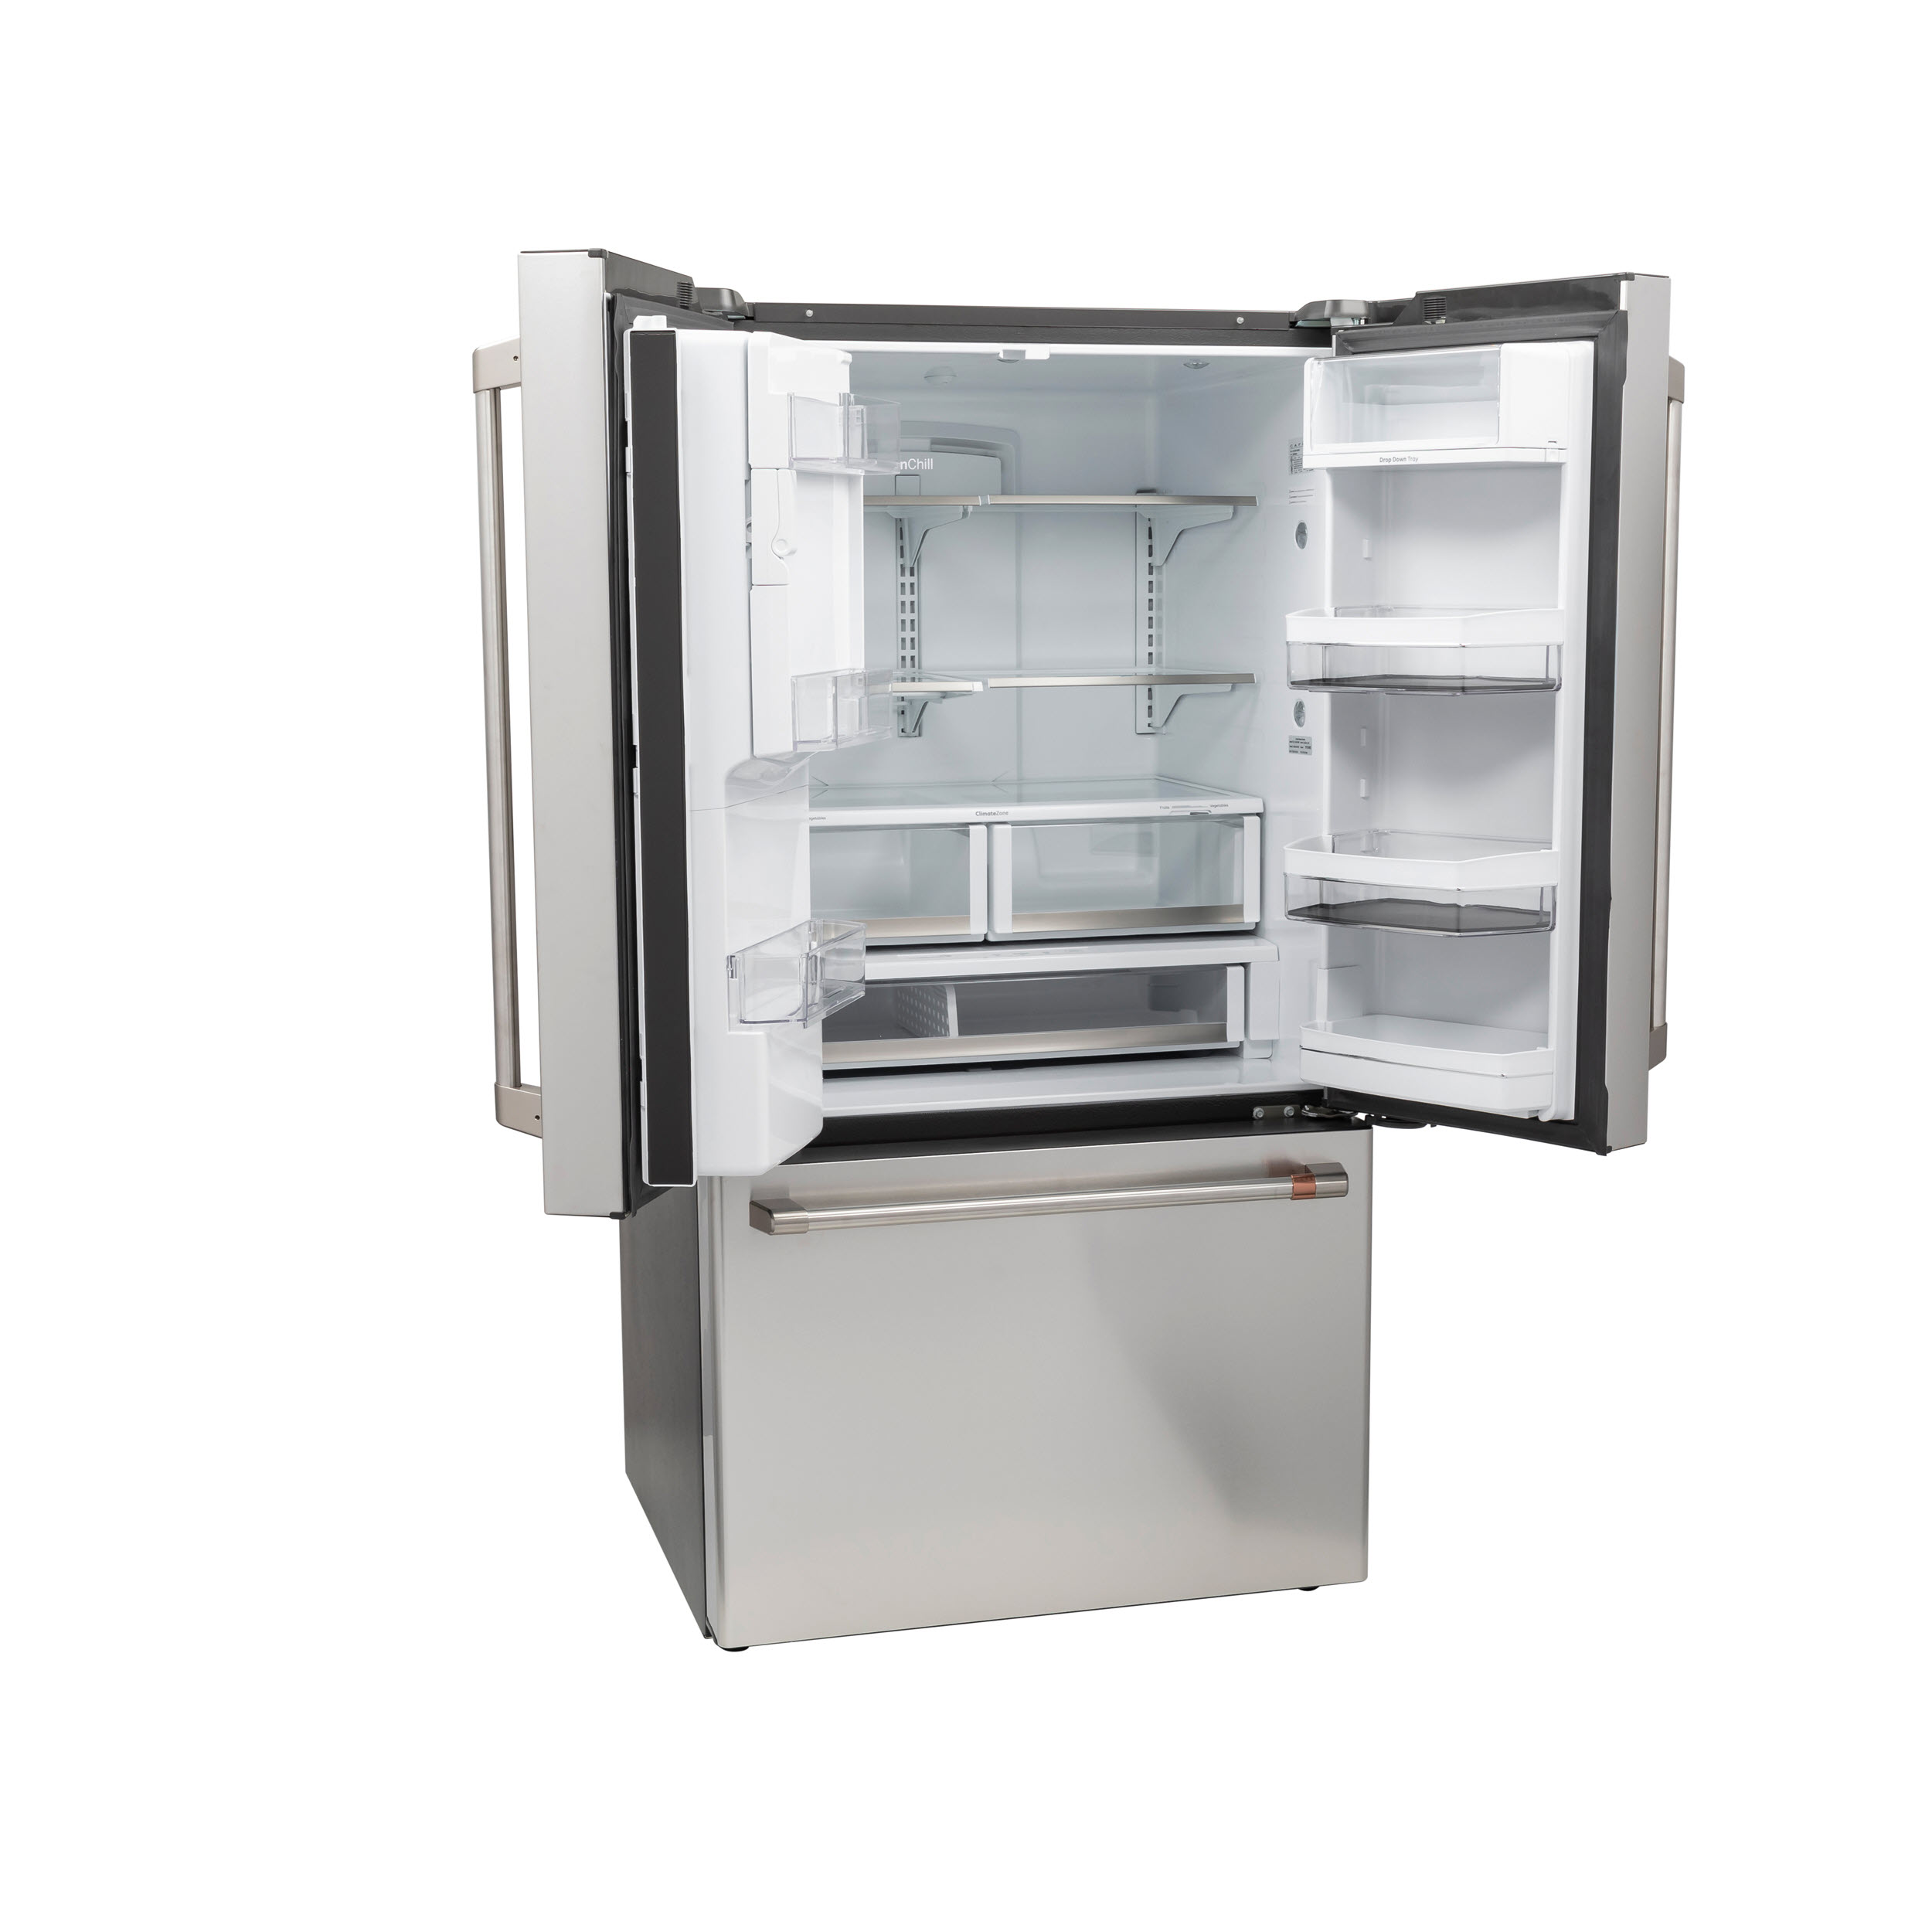 Model: CFE28TP2MS1 | Cafe Café™ ENERGY STAR® 27.8 Cu. Ft. Smart French-Door Refrigerator with Hot Water Dispenser